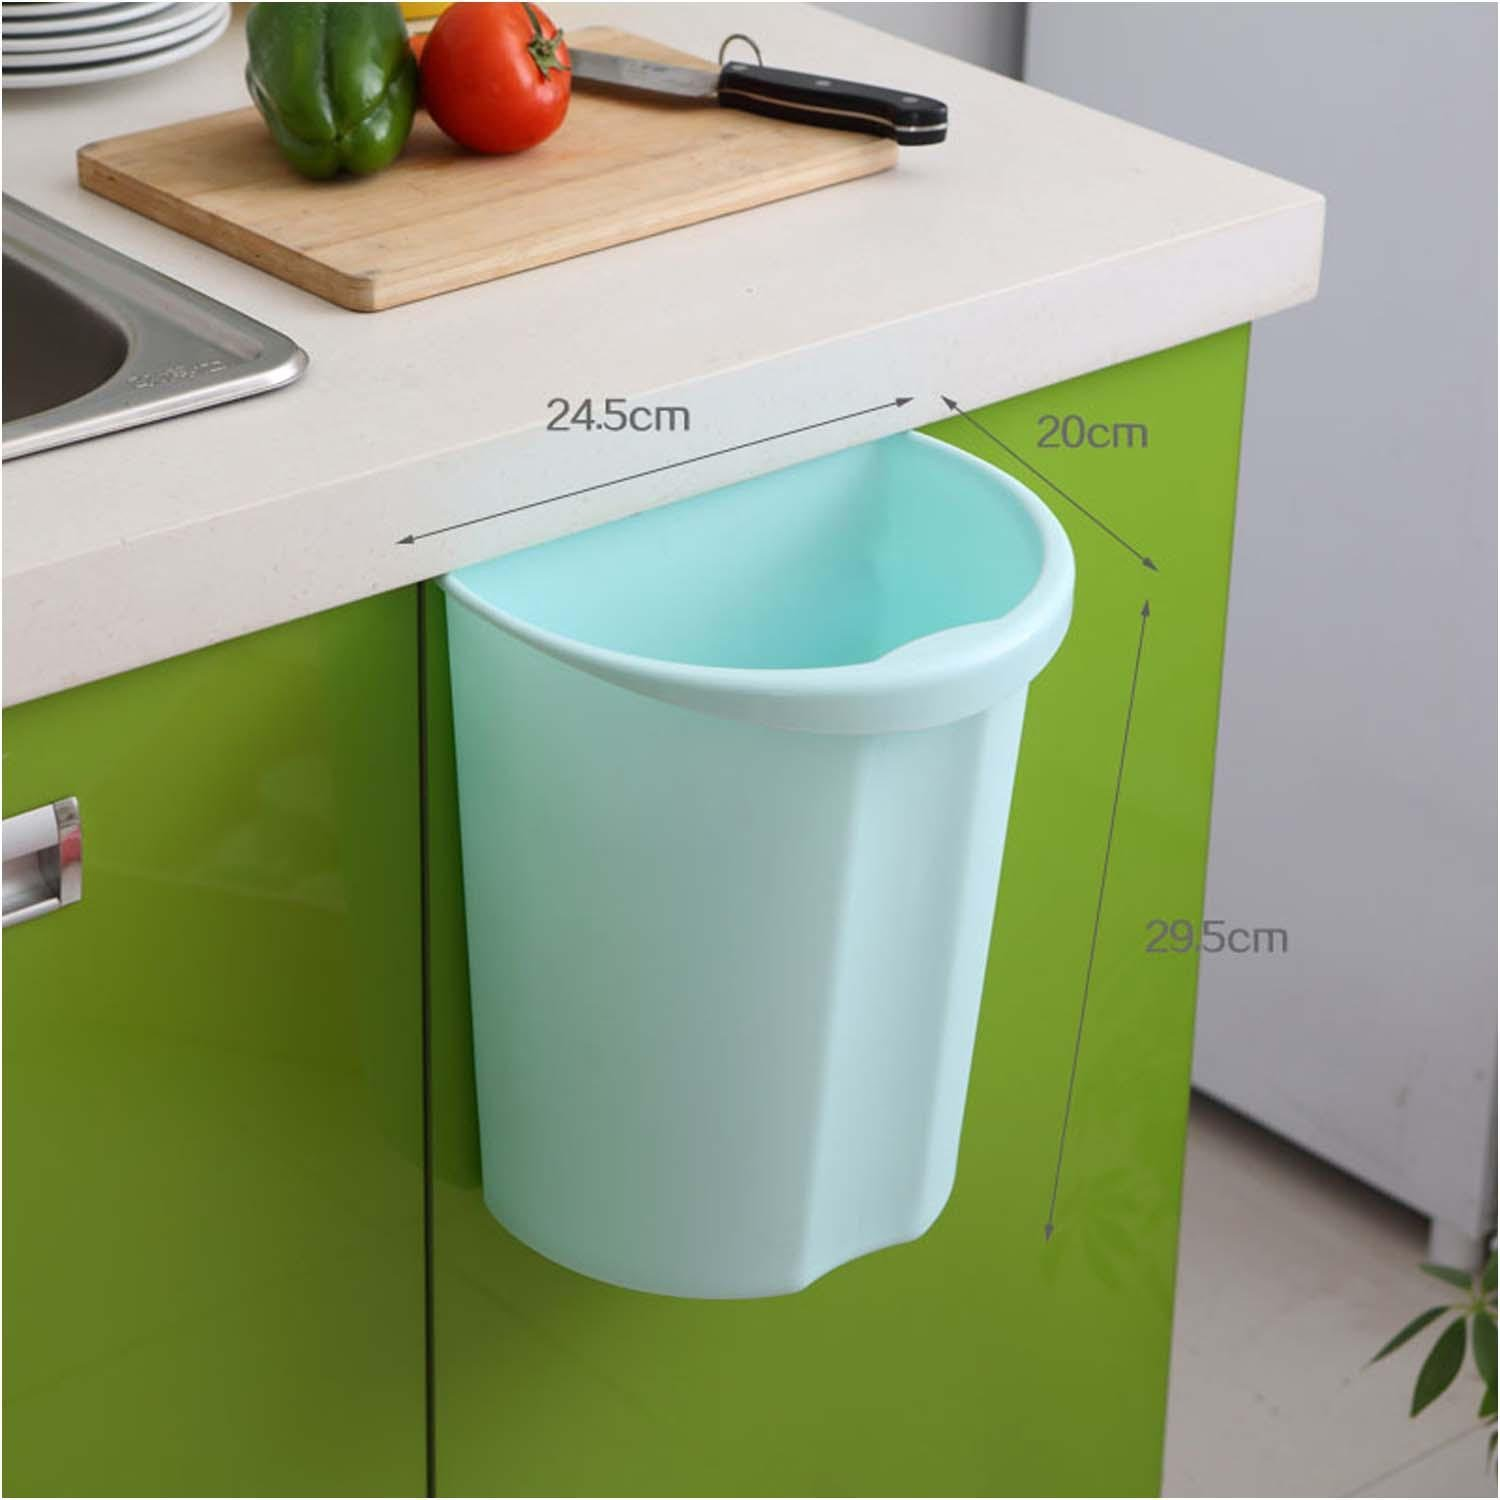 889a8f344fc Get Quotations · OOFYHOME Home wall-mounted trash cans